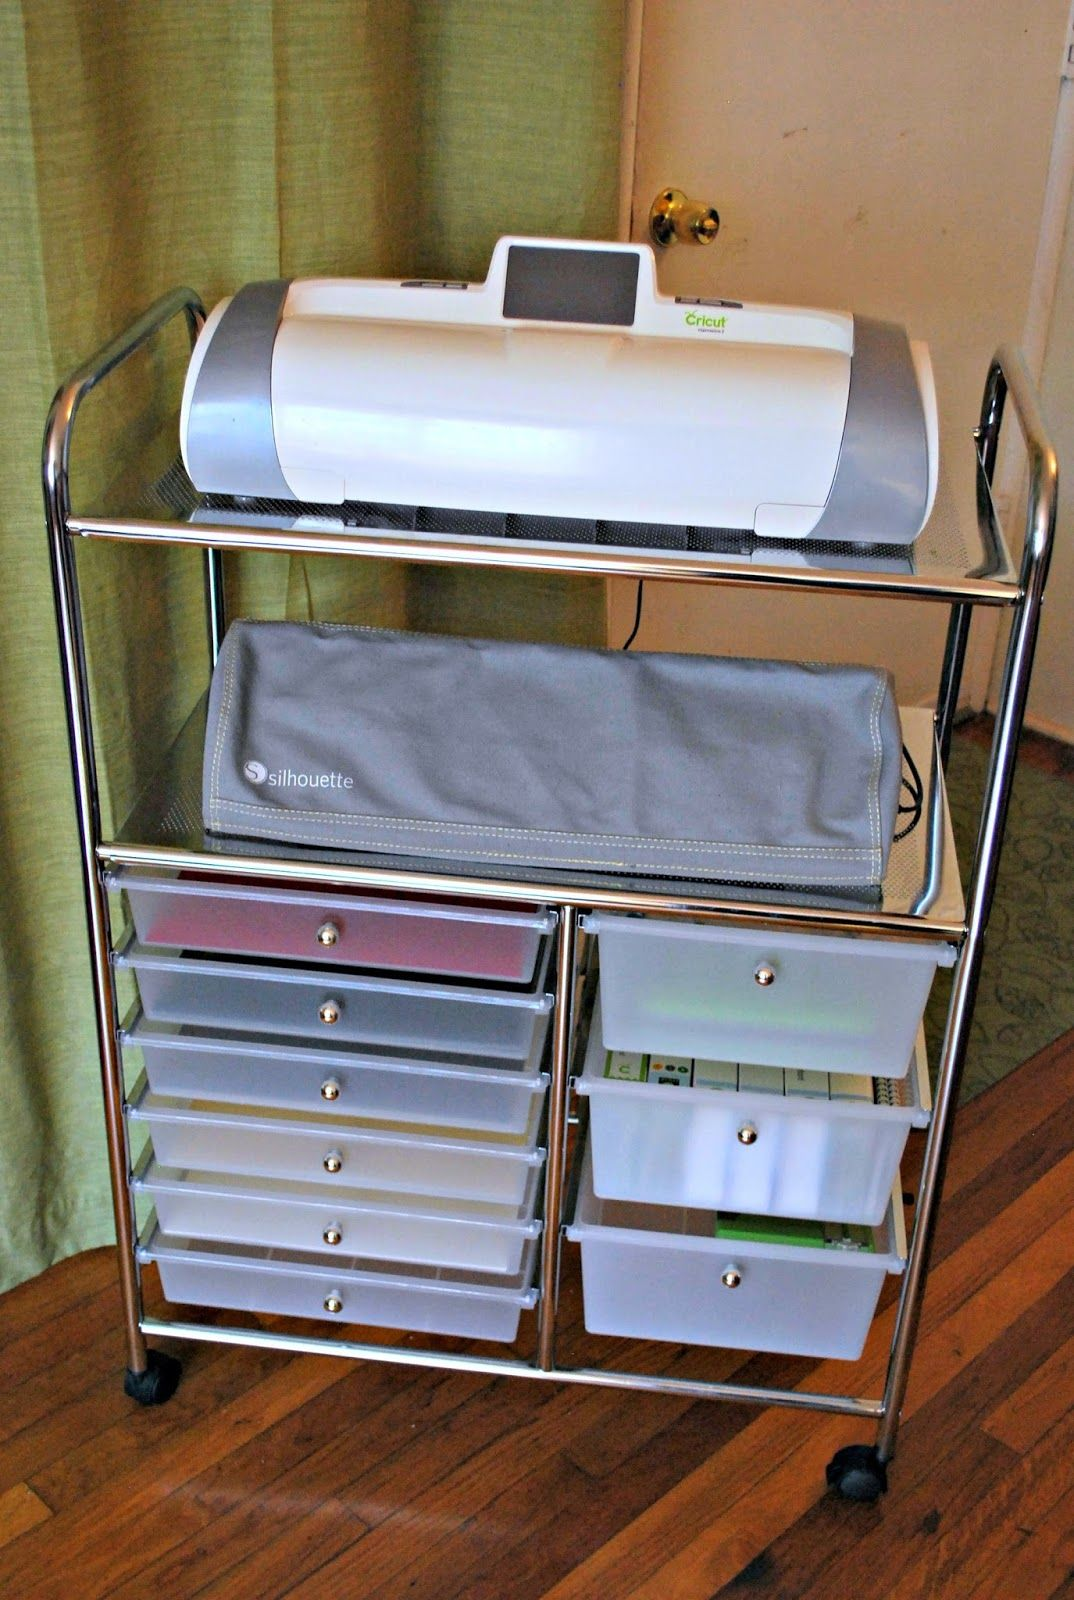 Scrapbook room storage ideas - Crafty Creations With Shemaine A Fabulous Cricut Silhouette Storage Find Scrapbook Storagescrapbook Organizationscrapbook Roomscameo